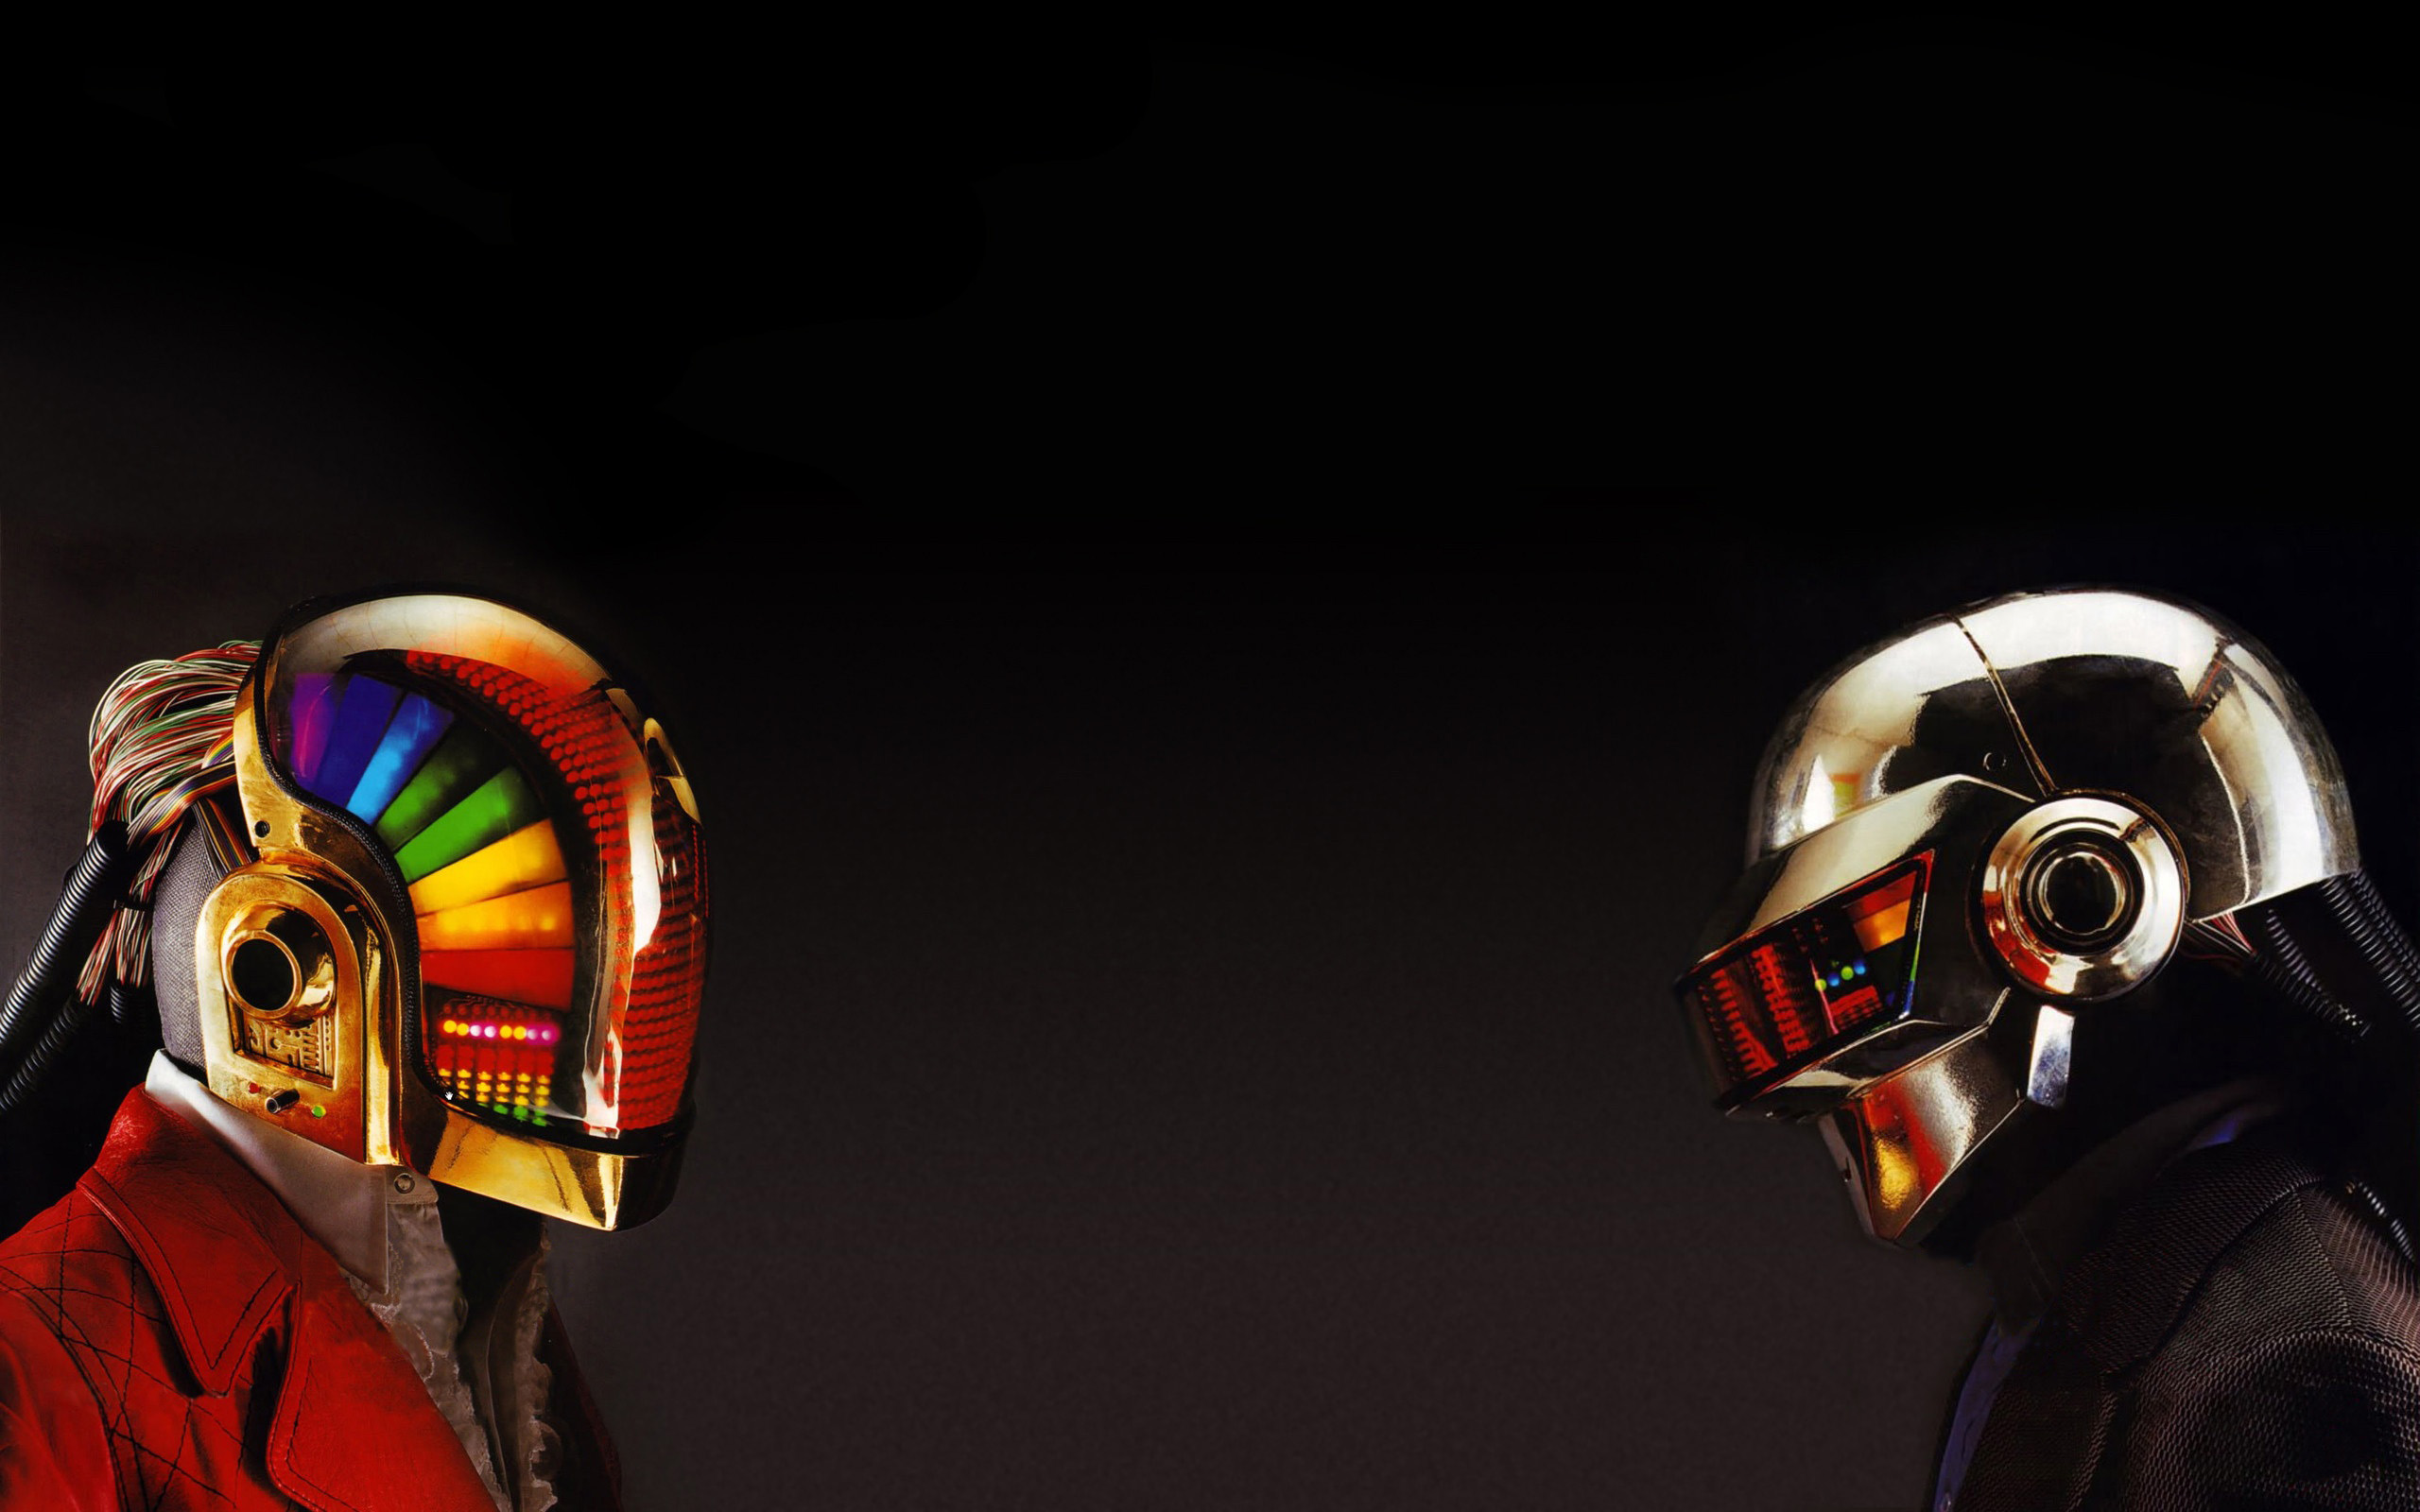 Daft Punk Res: 2560x1600 / Size:480kb. Views: 380975